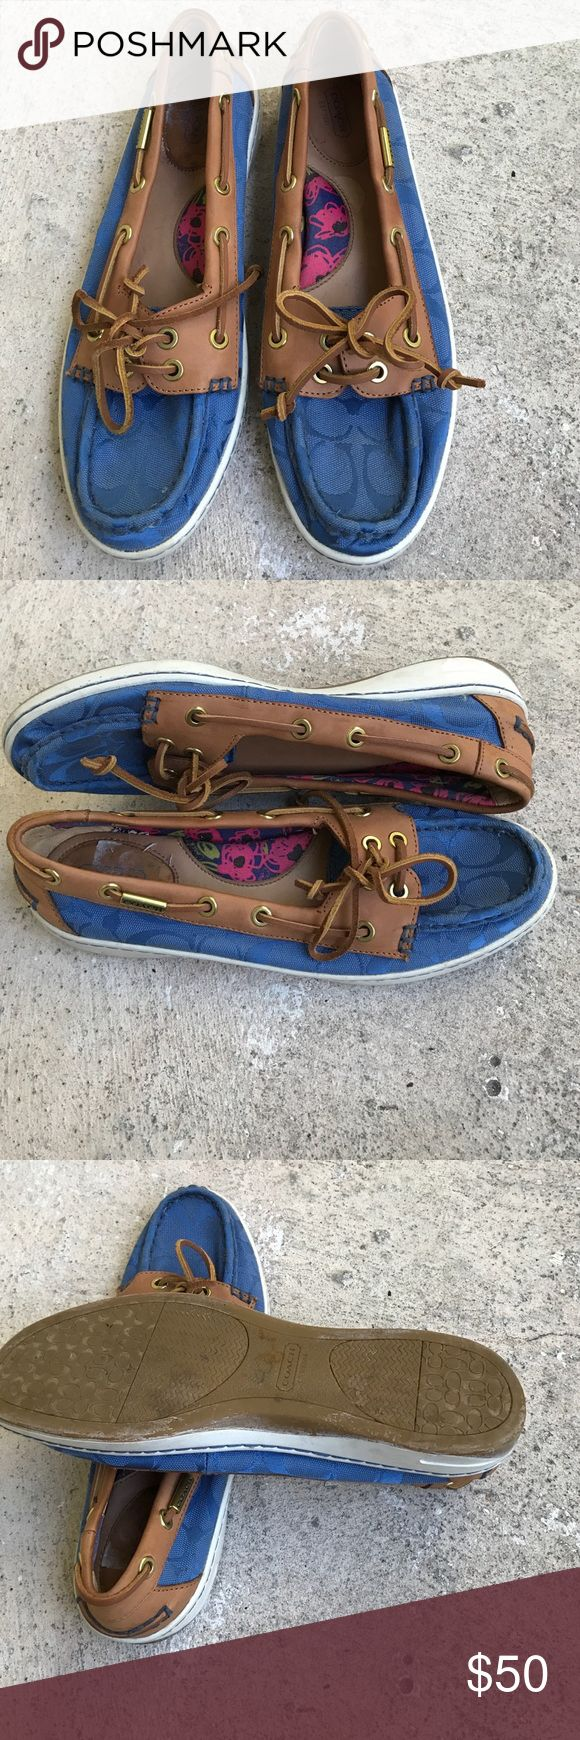 Coach doc siders These blue in leather Boatshoes are practically new, i used white shoe polish on the edging and a little bit got on the sole of that will come off with wear. Coach Shoes Flats & Loafers